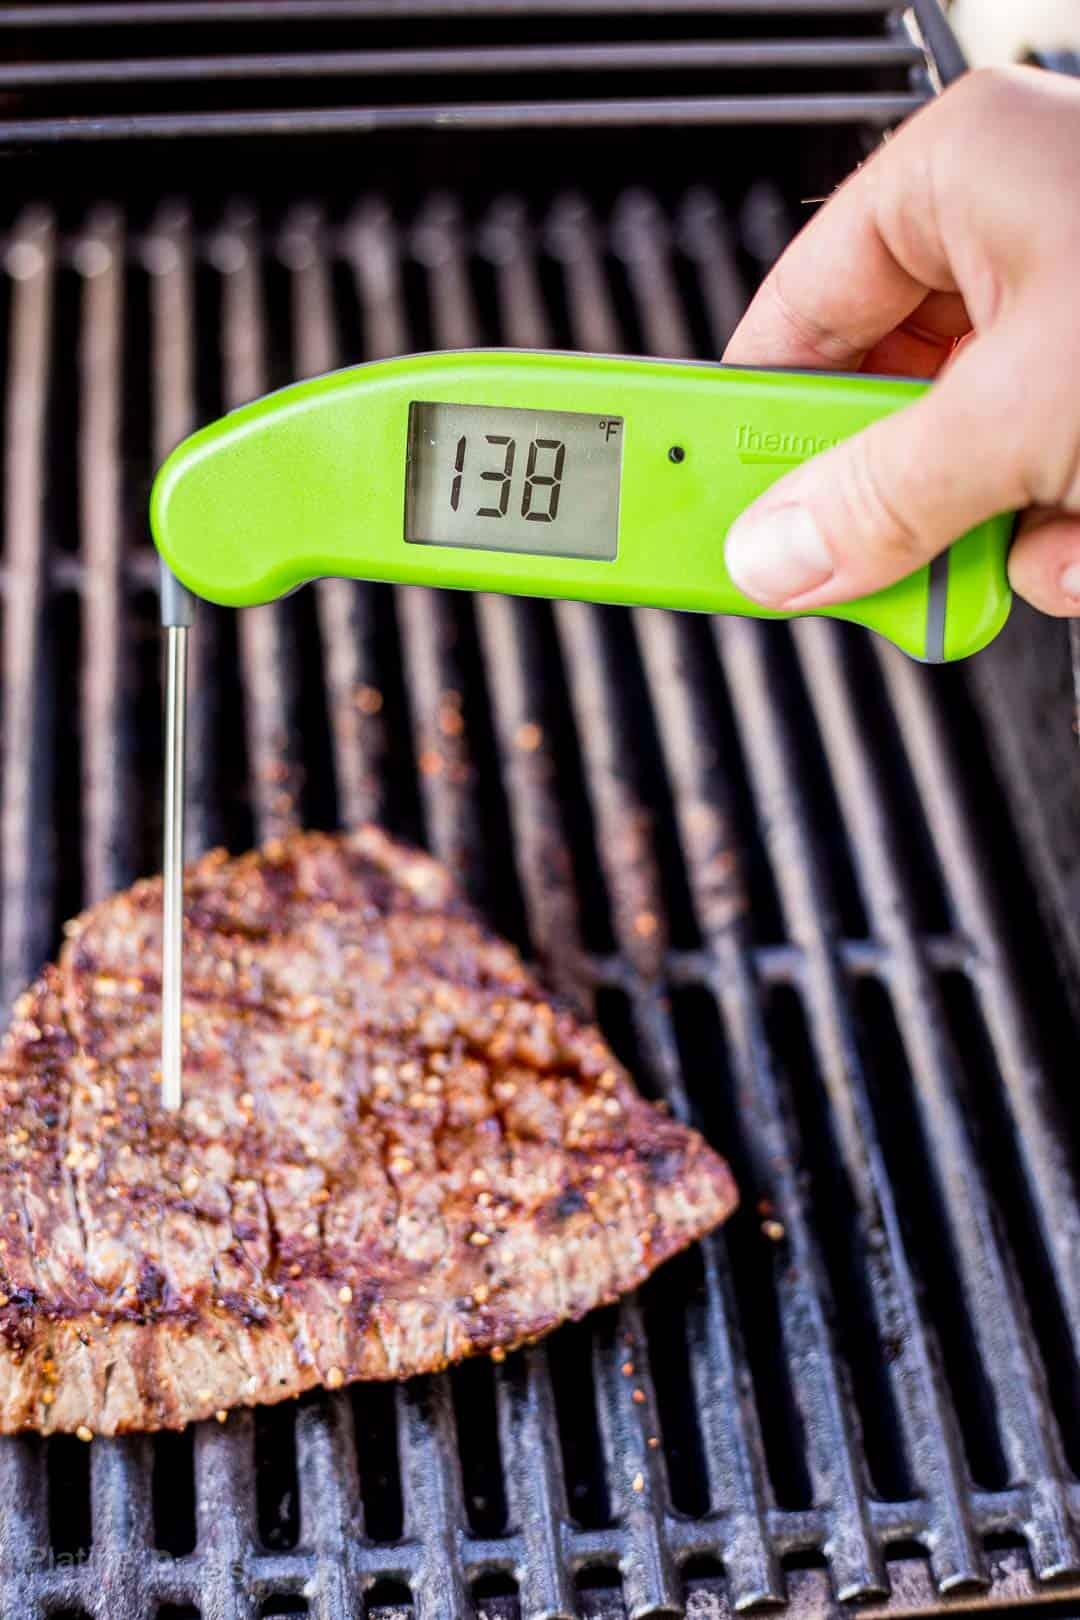 Checking the temperature of a London Broil on the grill with a digital thermometer